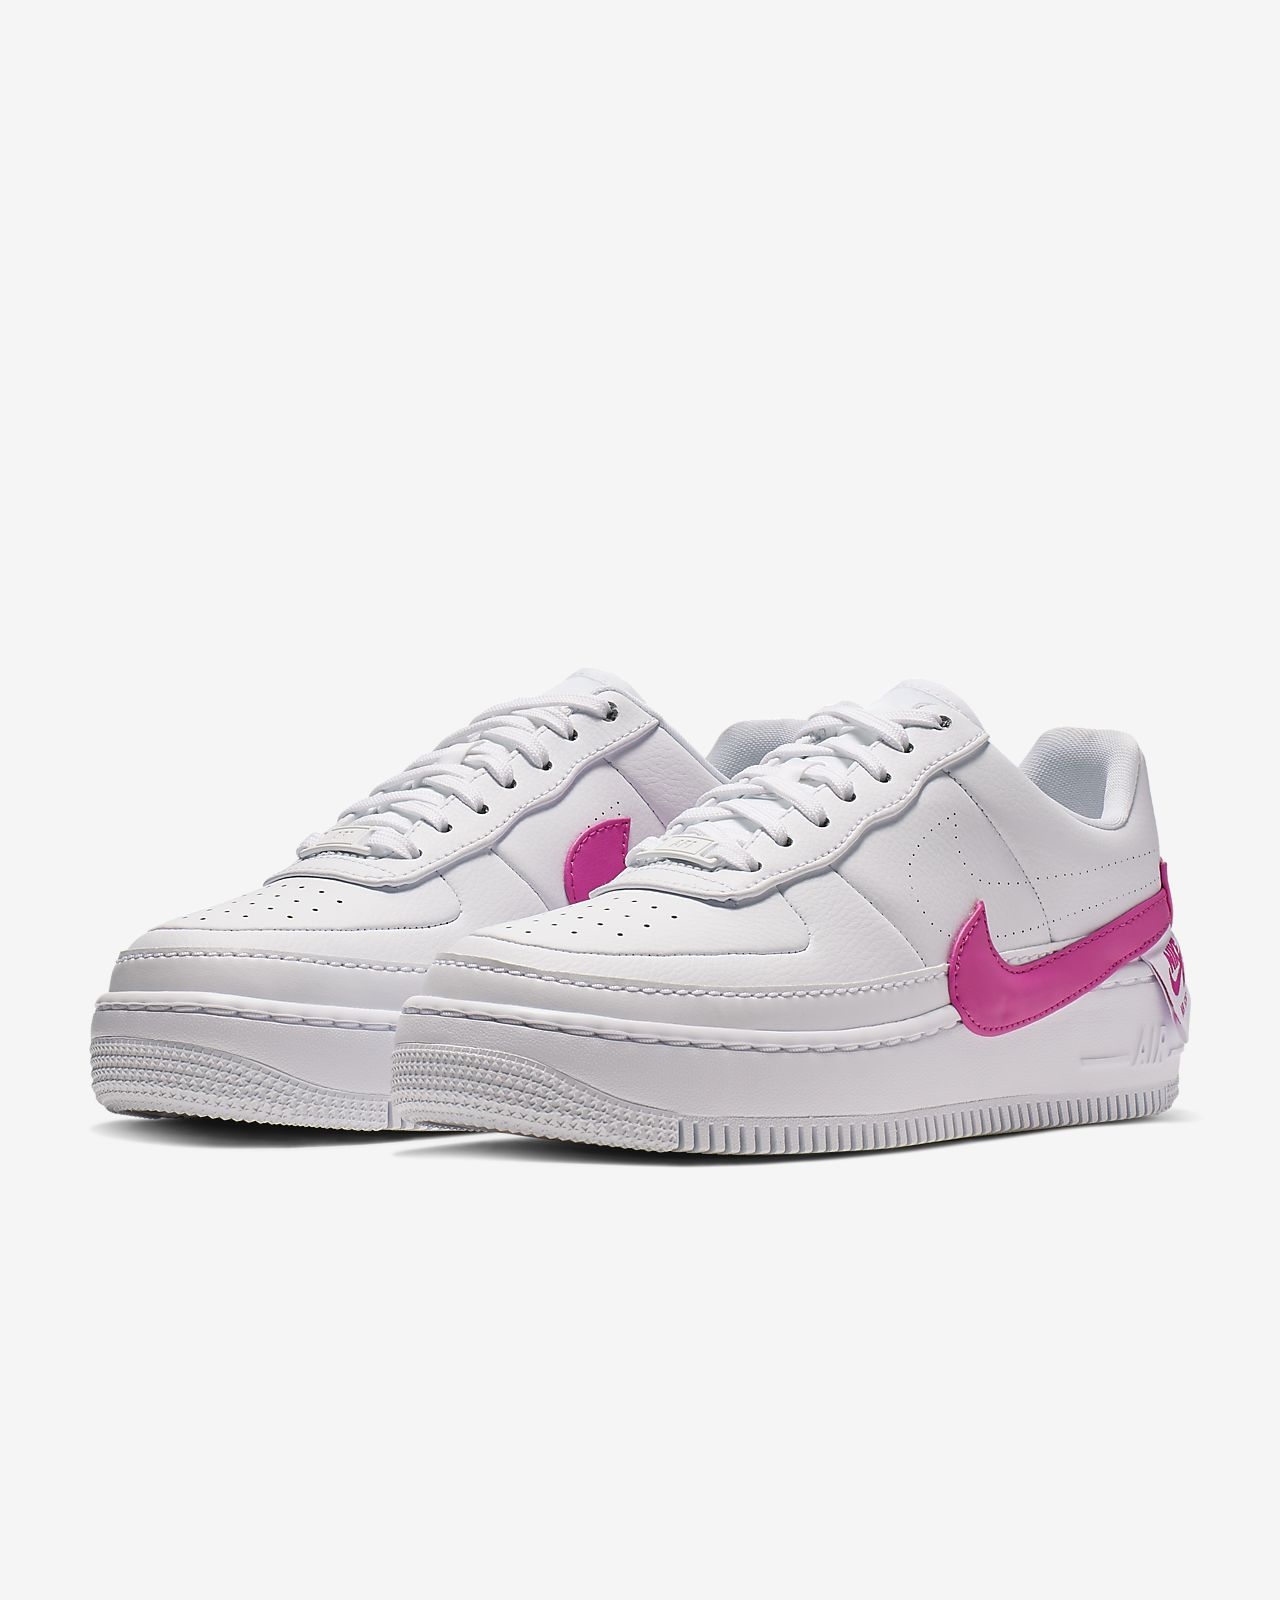 new arrival db8ec abf28 ... Nike Air Force 1 Jester XX Shoe